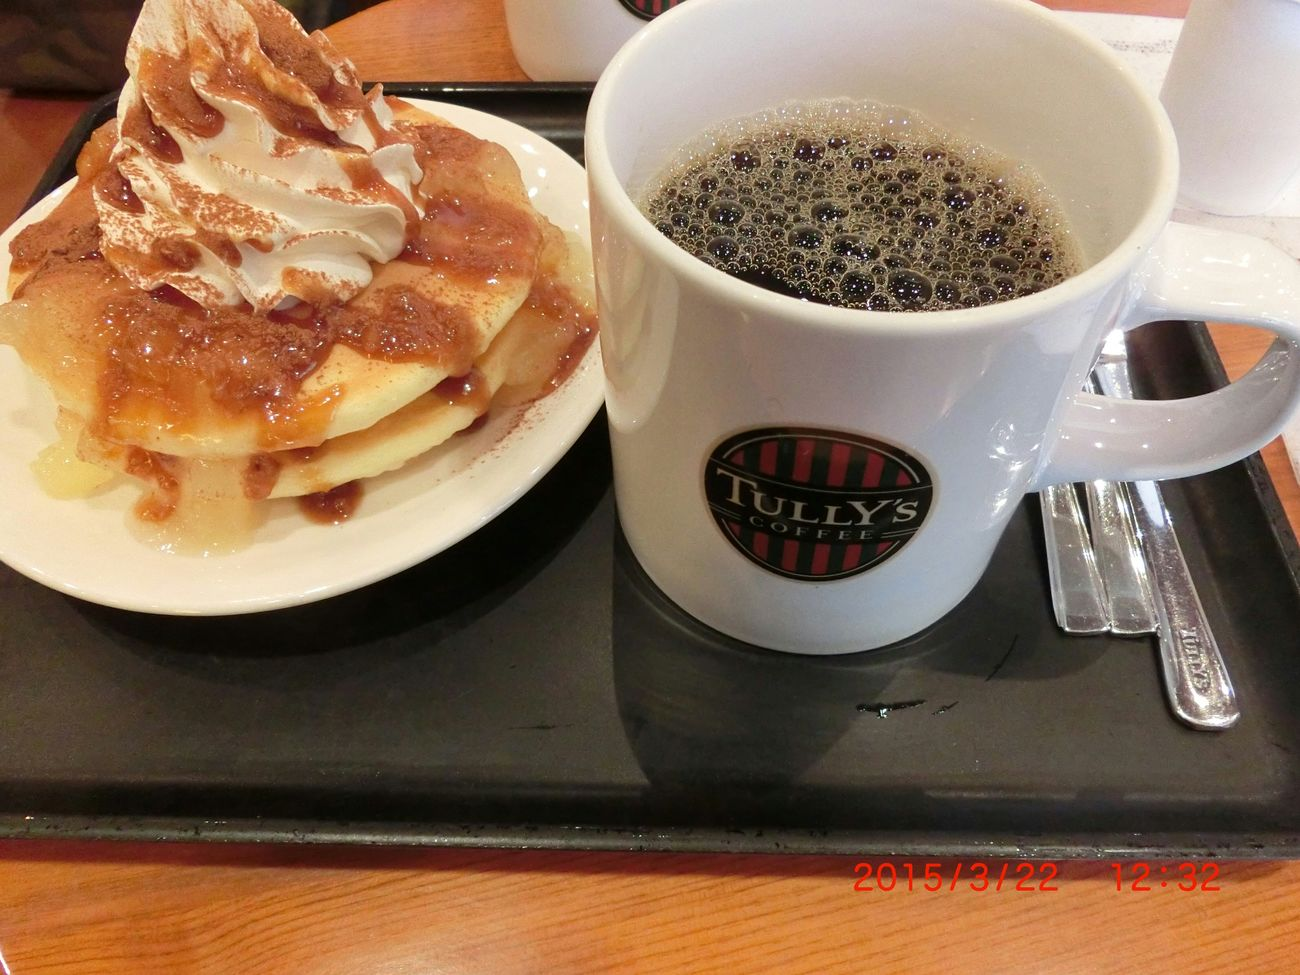 Pancake Time Coffee Time Tully's